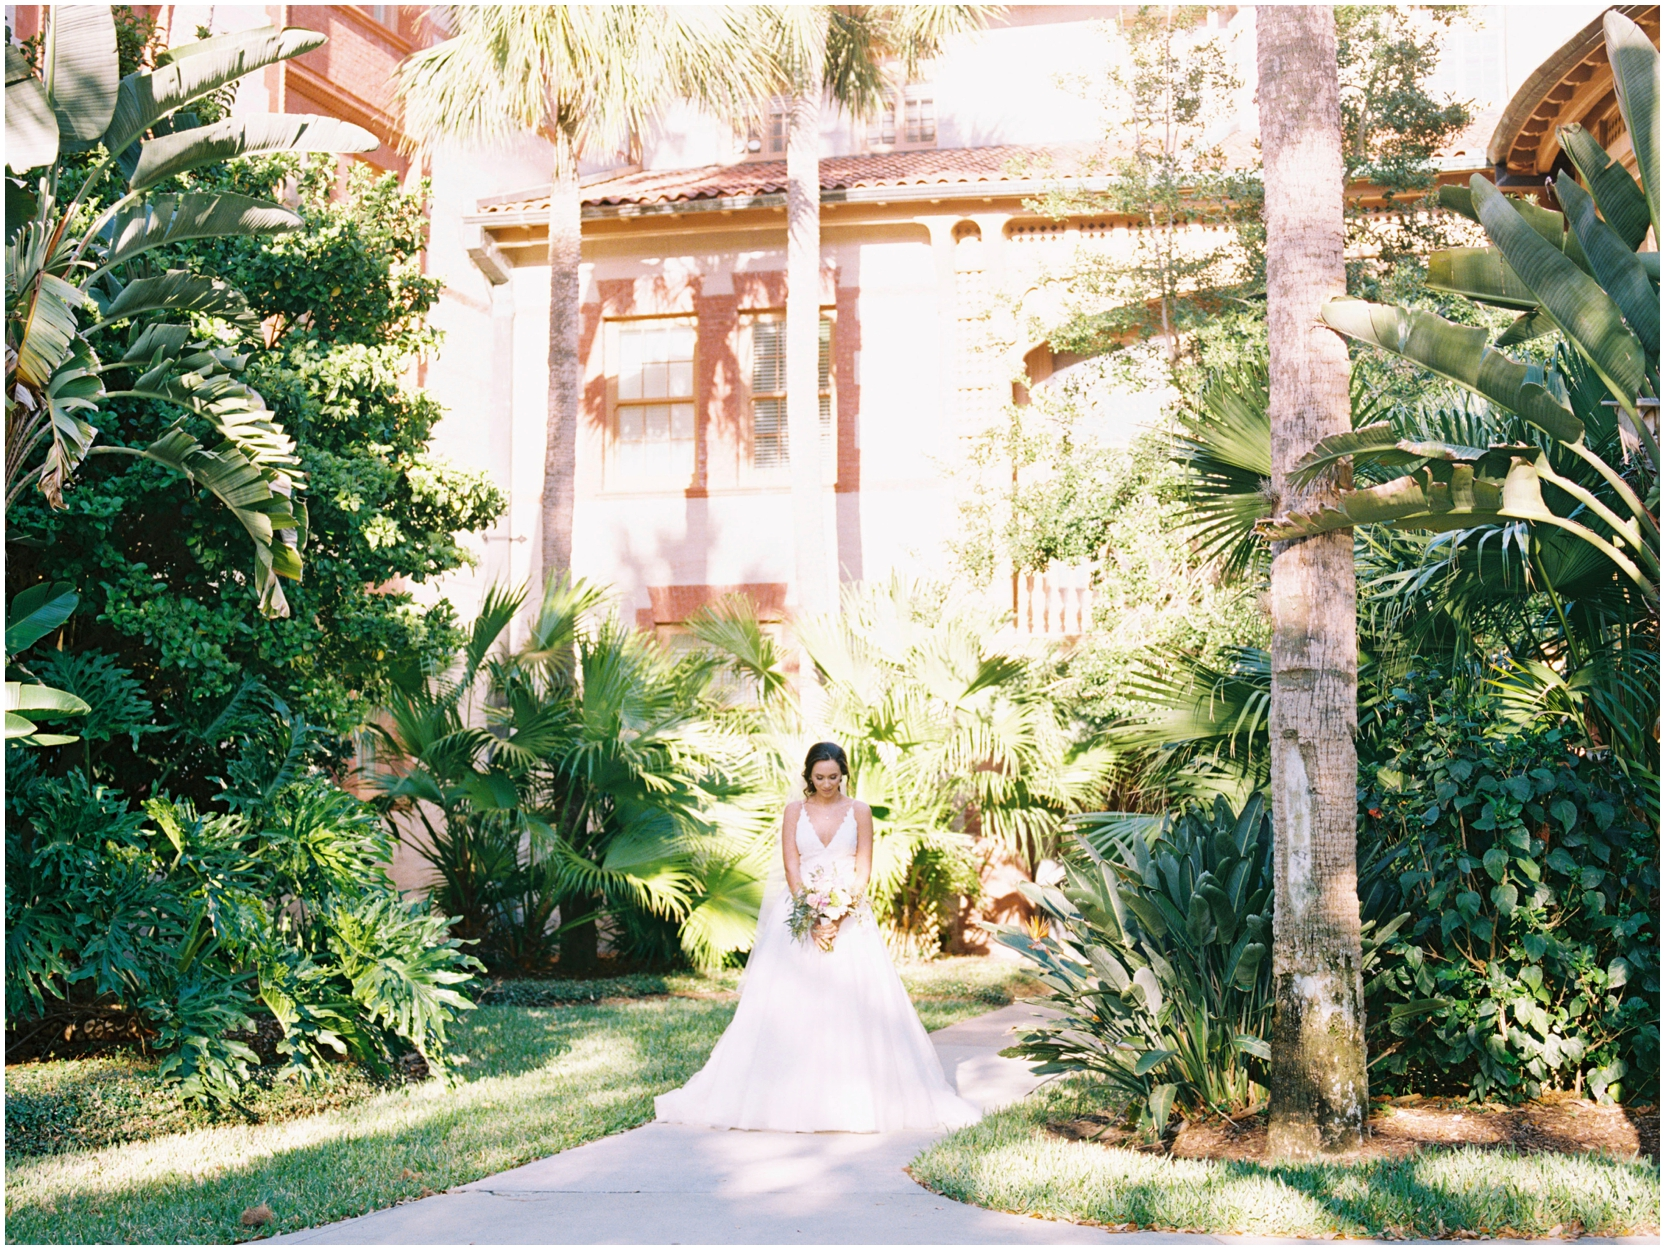 Lisa Silva Photography -Bridal Portrait Session in St. Augustine, Florida- Jacksonville and North East Florida Fine Art Film Photographer_0010.jpg